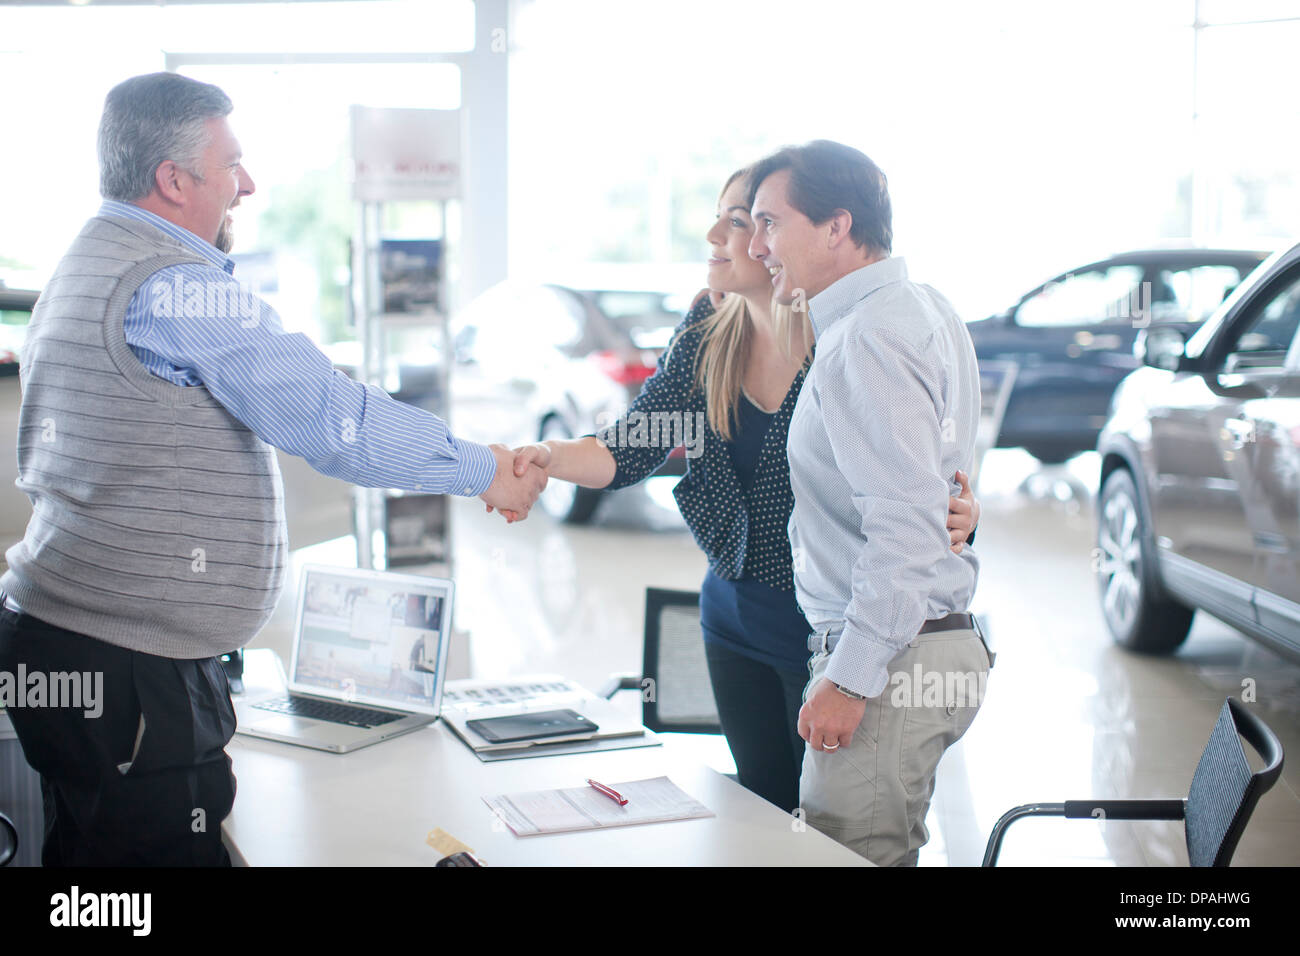 Car salesman and couple shaking hands in car showroom - Stock Image